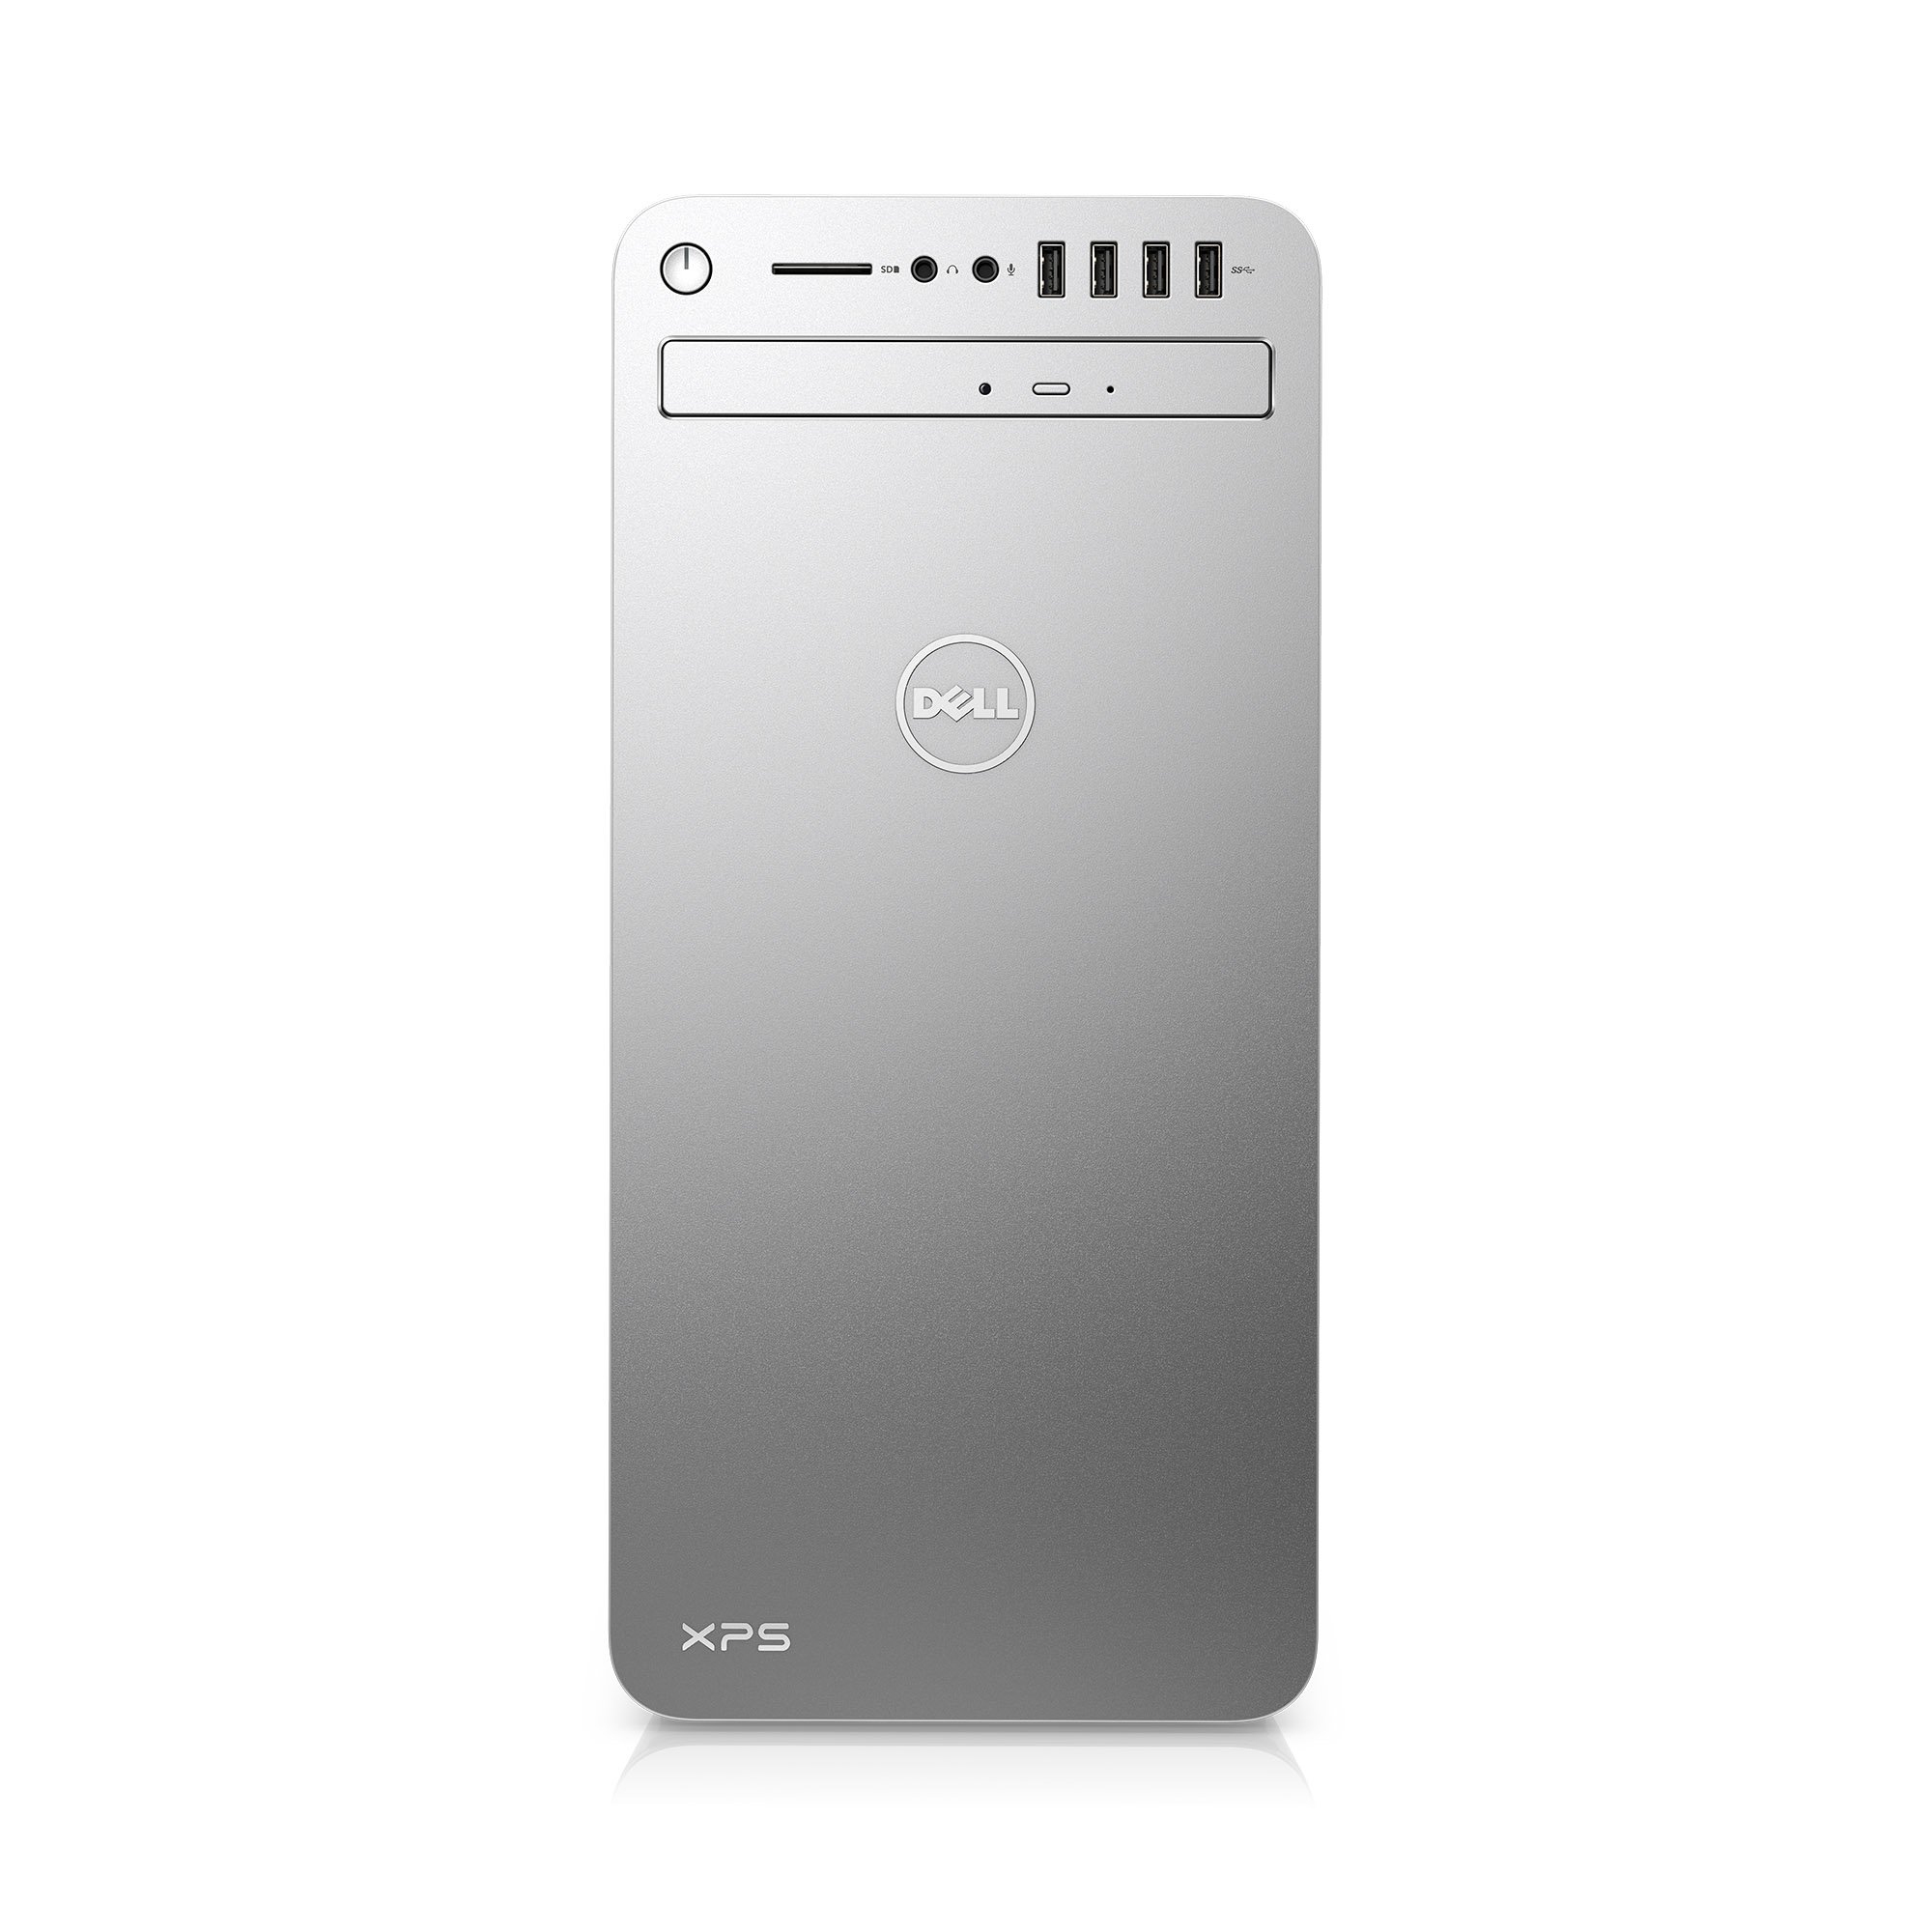 Dell XPS 8920 XPS8920-7529SLV-PUS Tower Desktop (Silver) by Dell (Image #1)